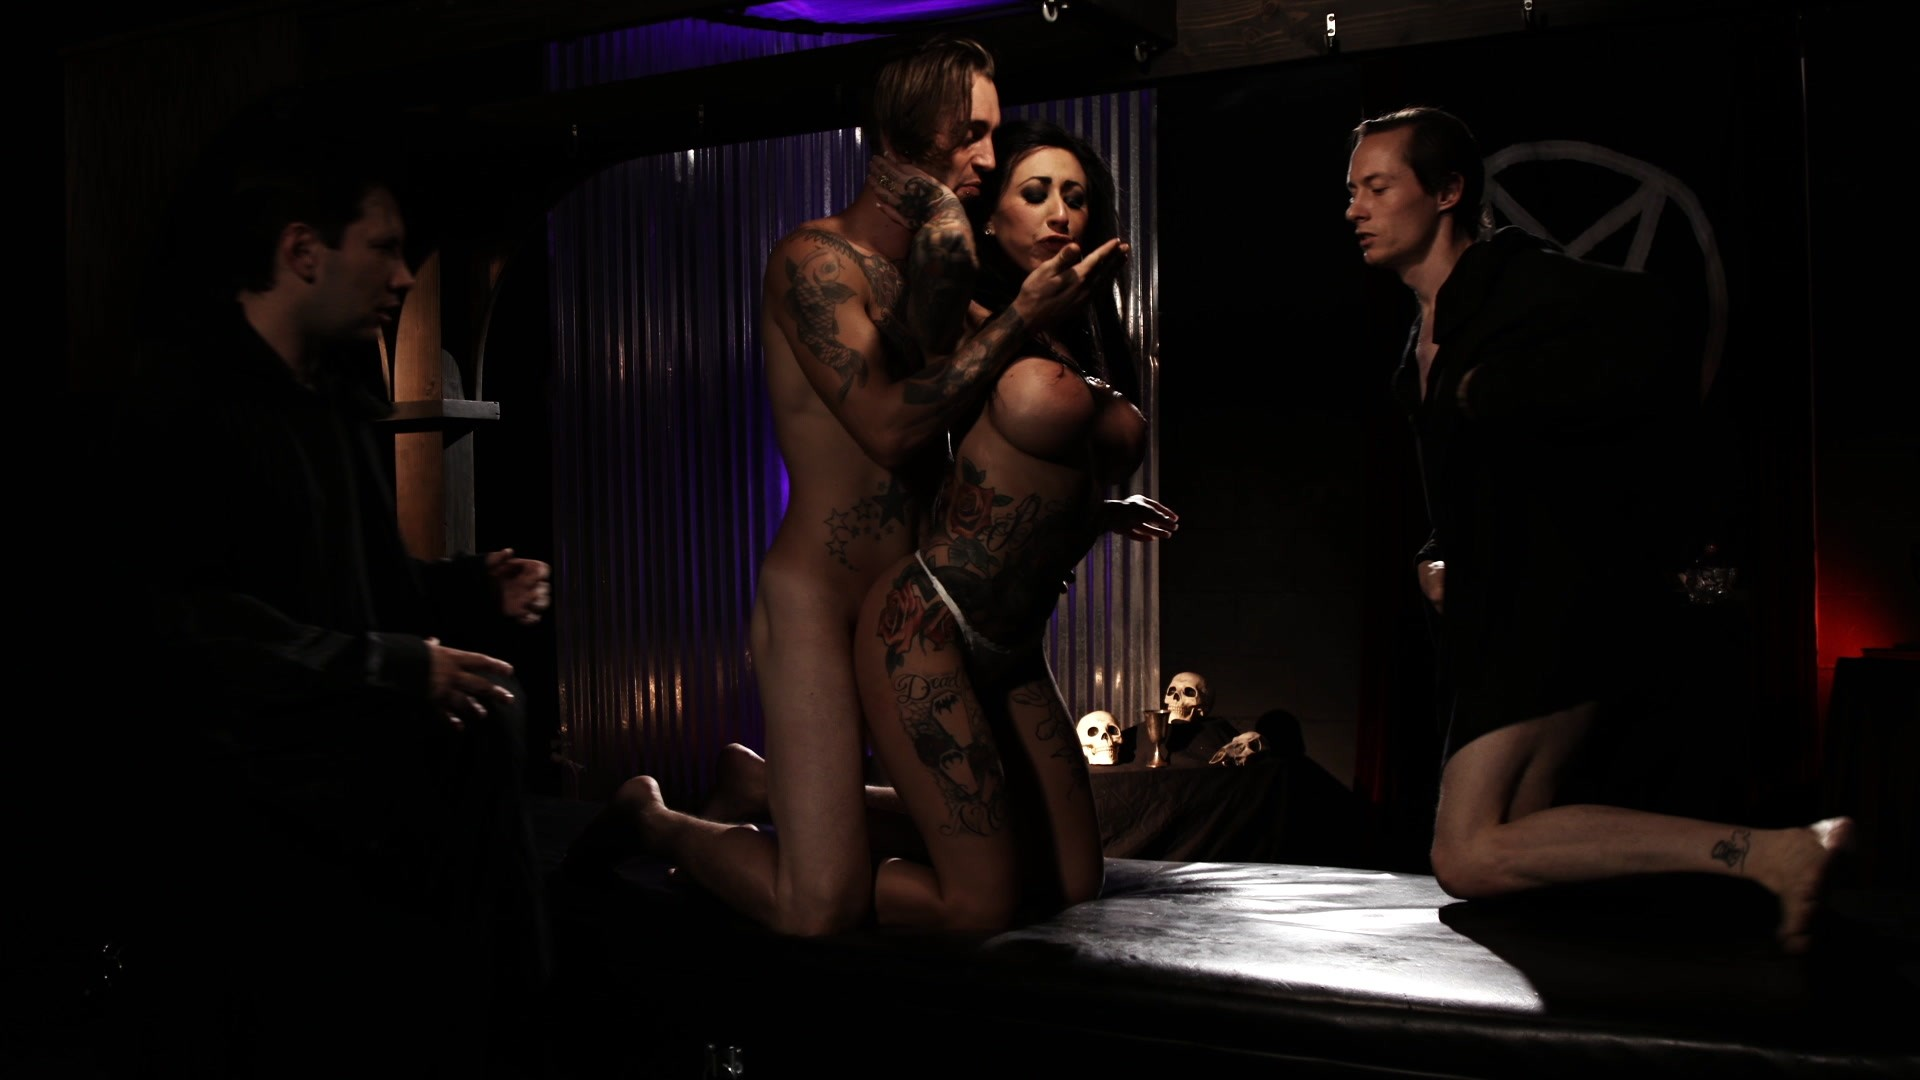 Scene with Tommy Pistol, Lily Lane and Owen Gray - image 8 out of 20